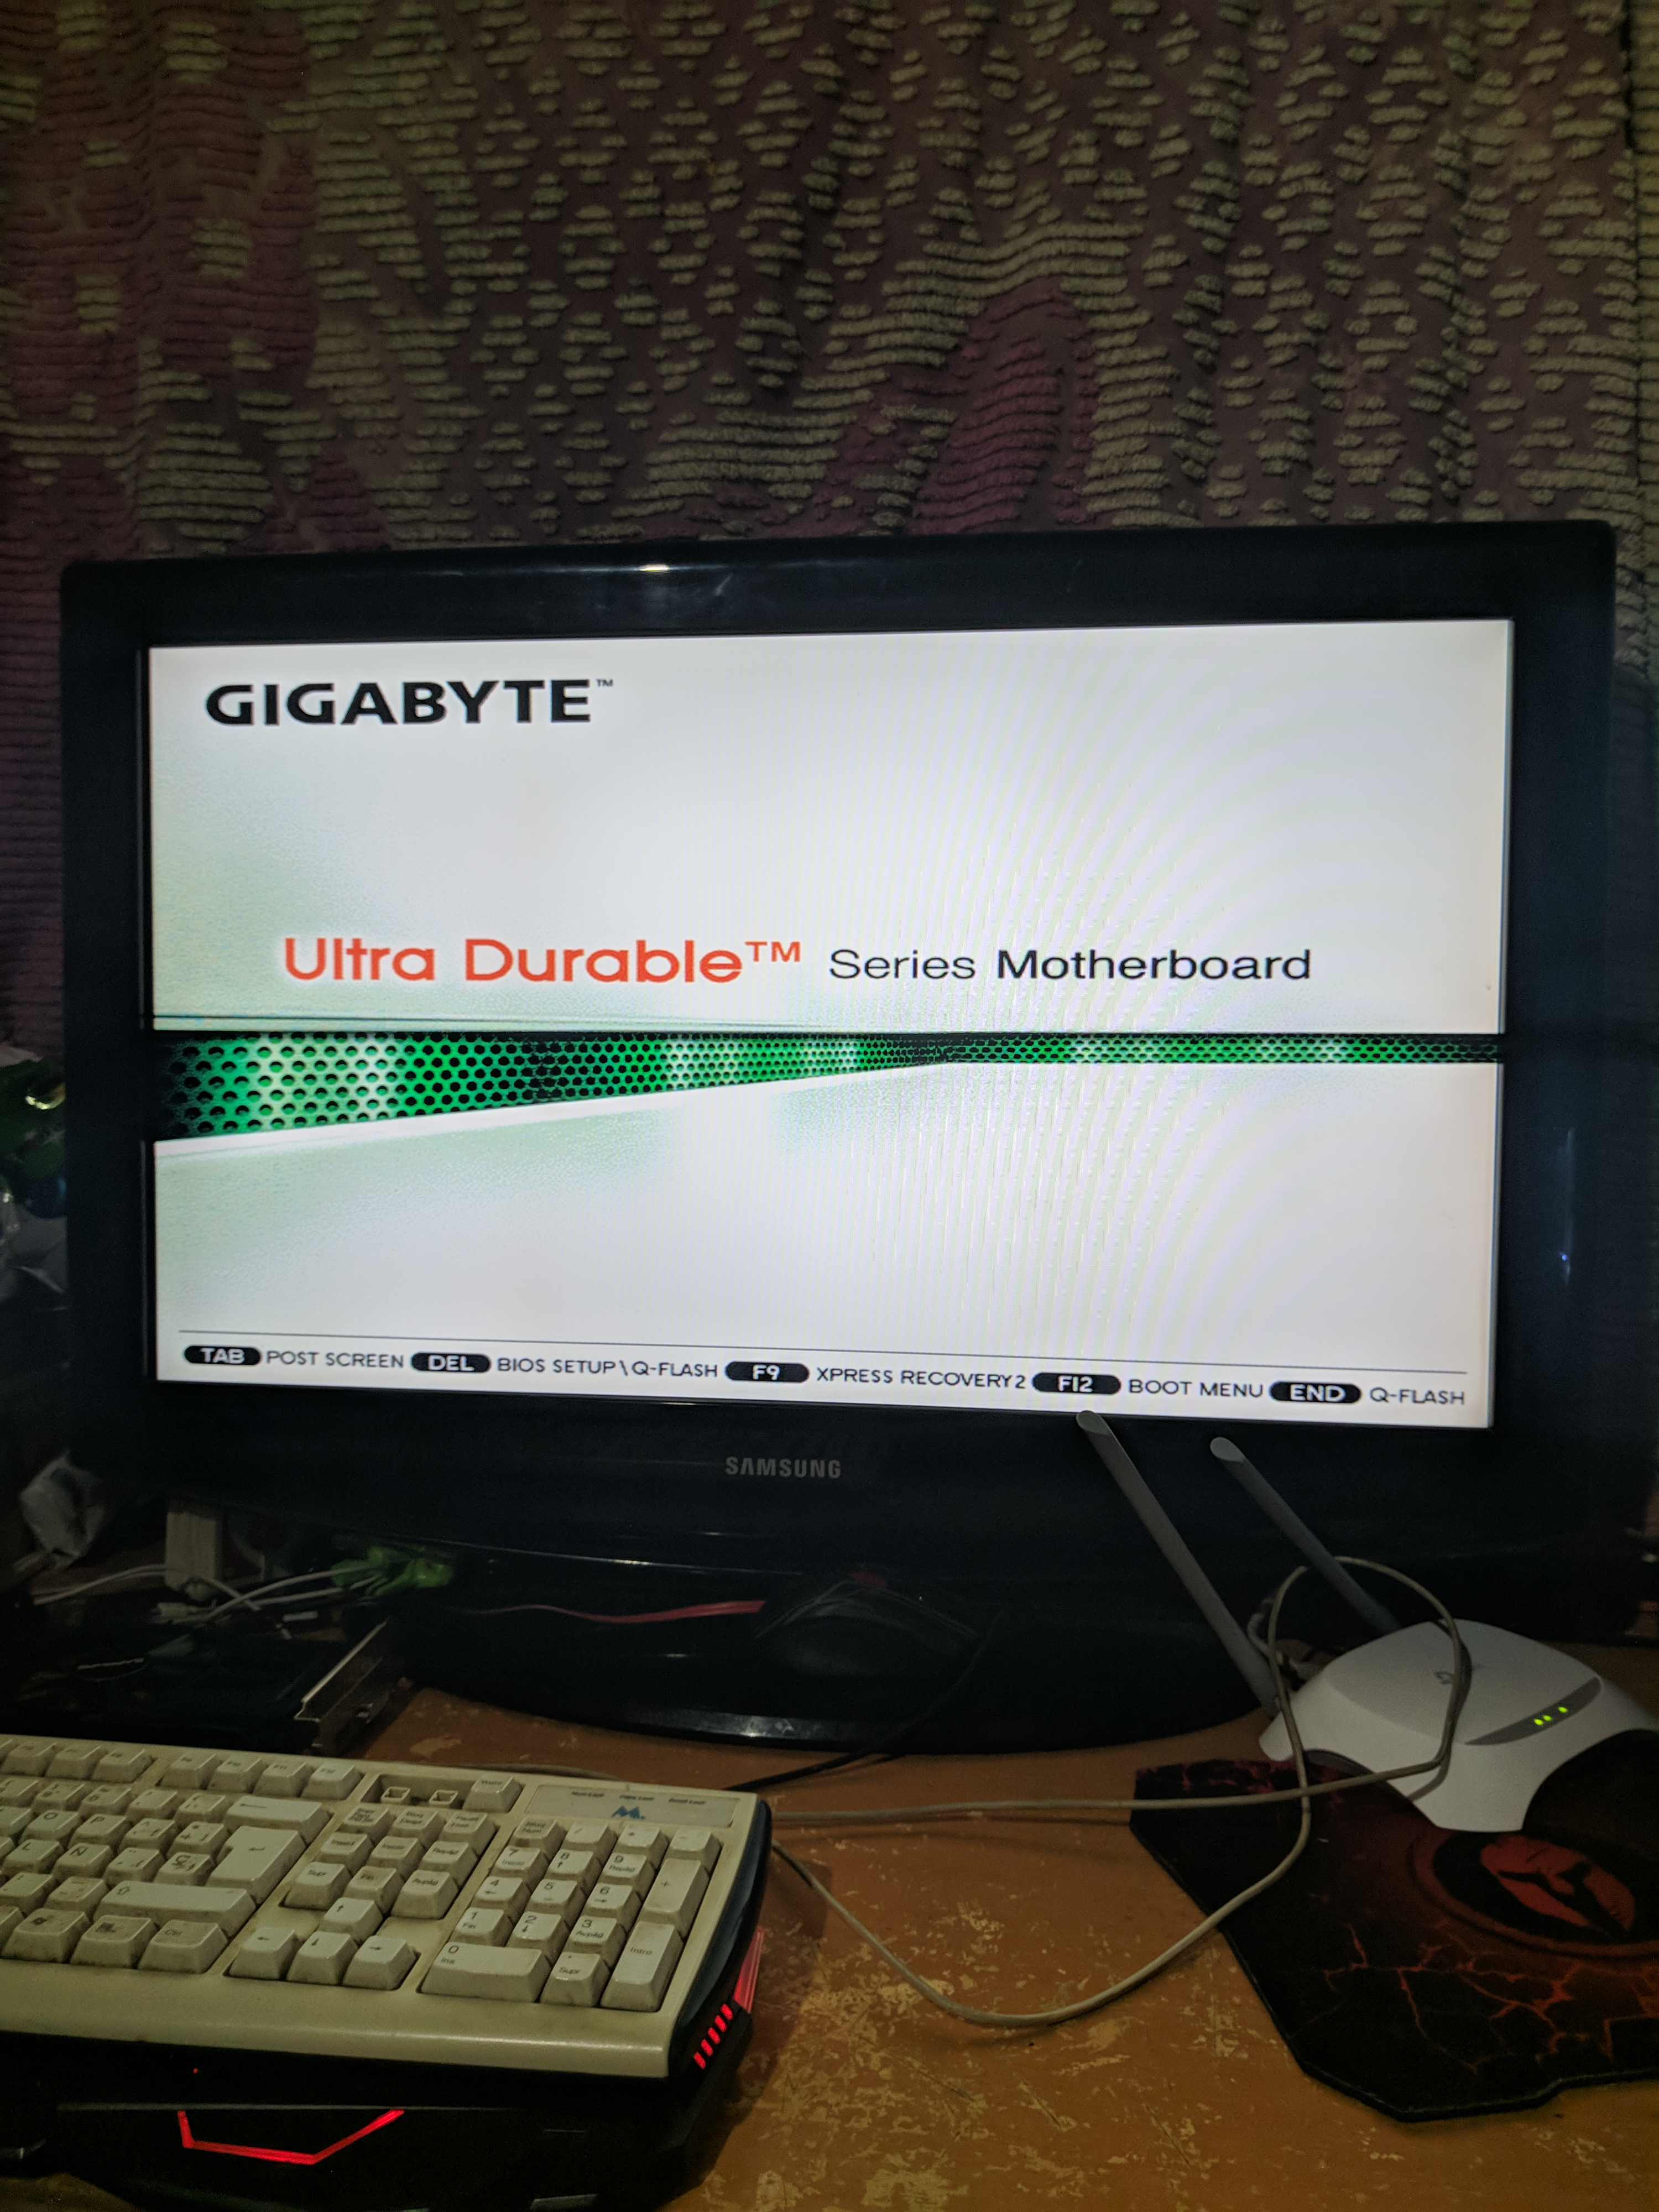 Stuck at gigabyte splash screen - CPUs, Motherboards, and